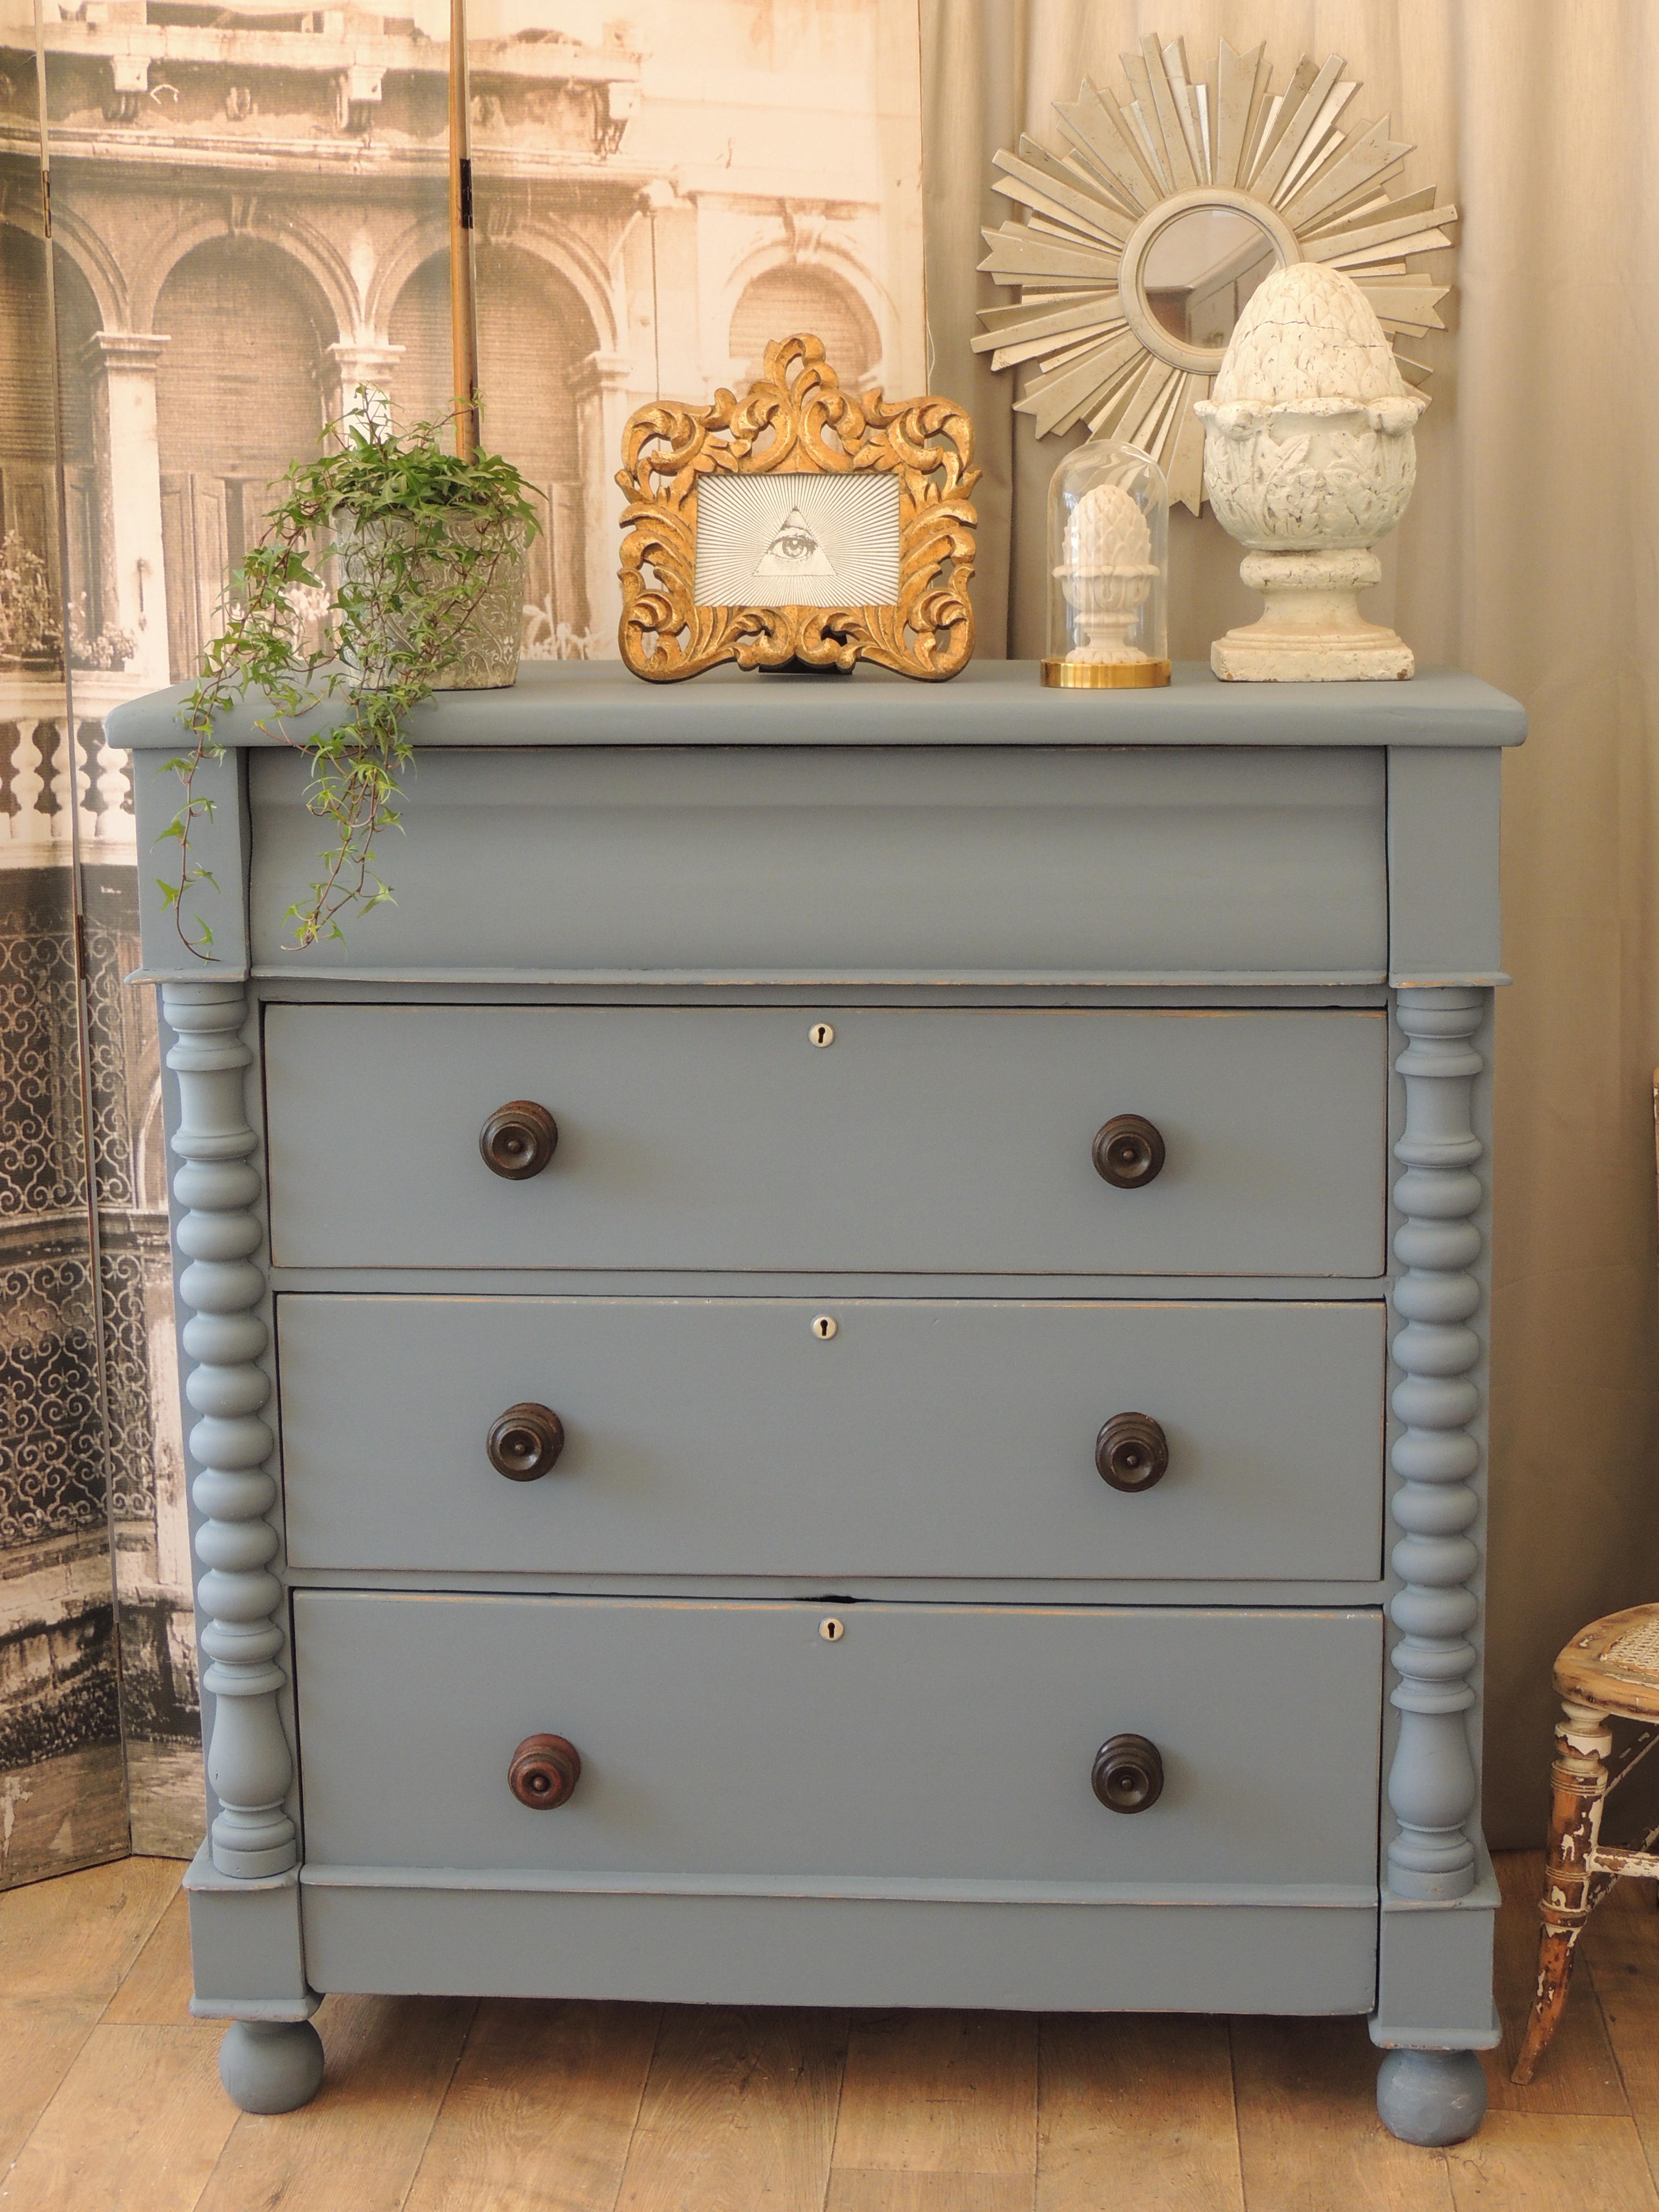 of drawers being shabby chest genevieve dresser chic